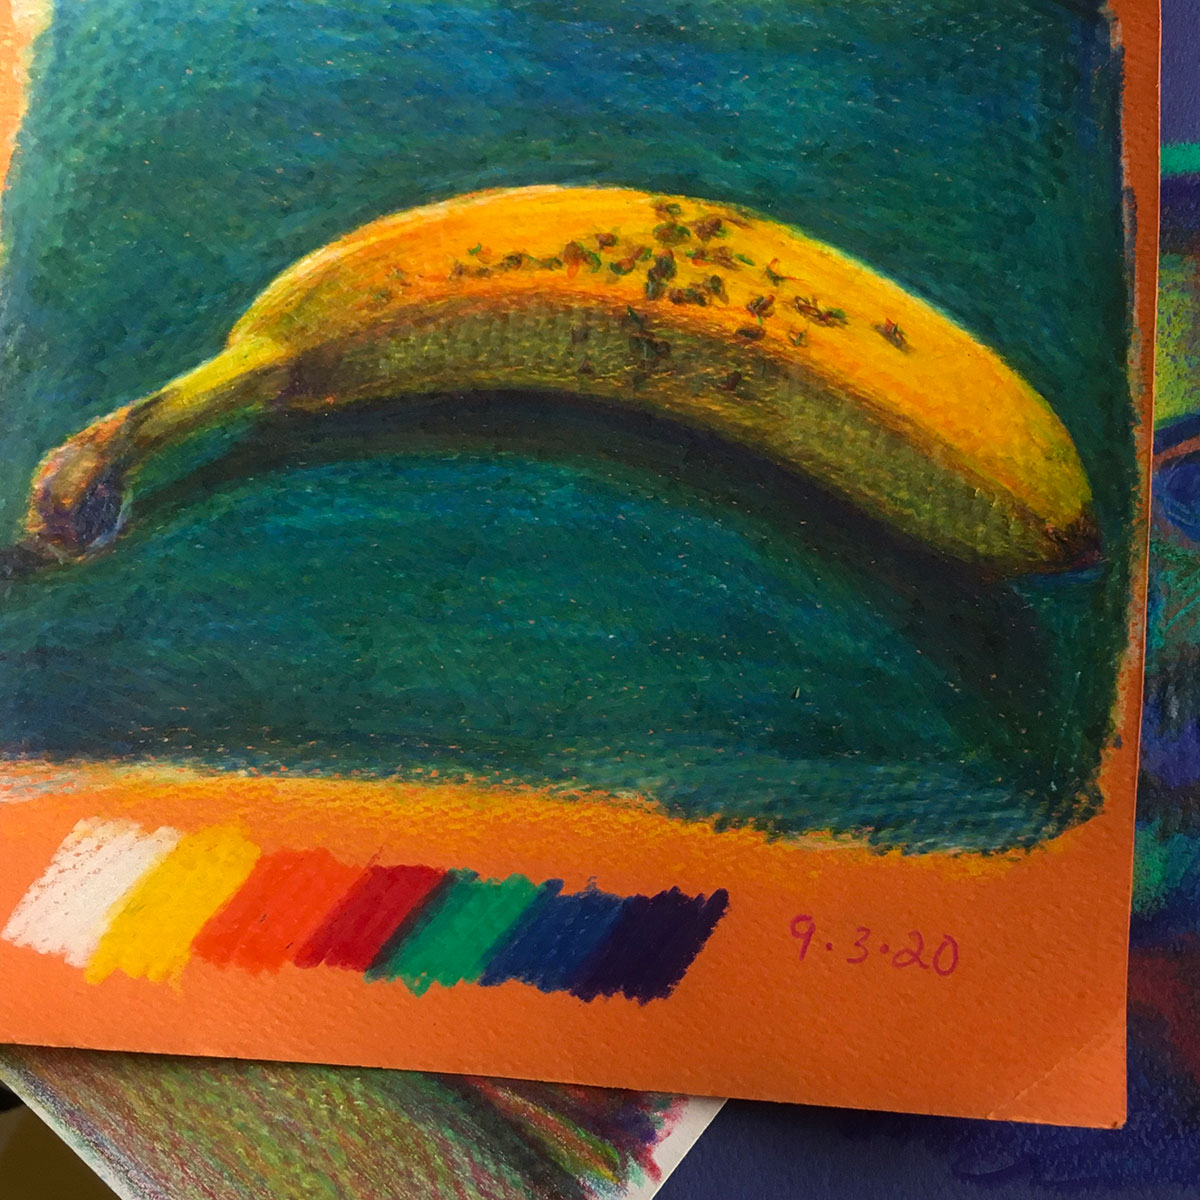 Drop in Drawing: Still Life in Color